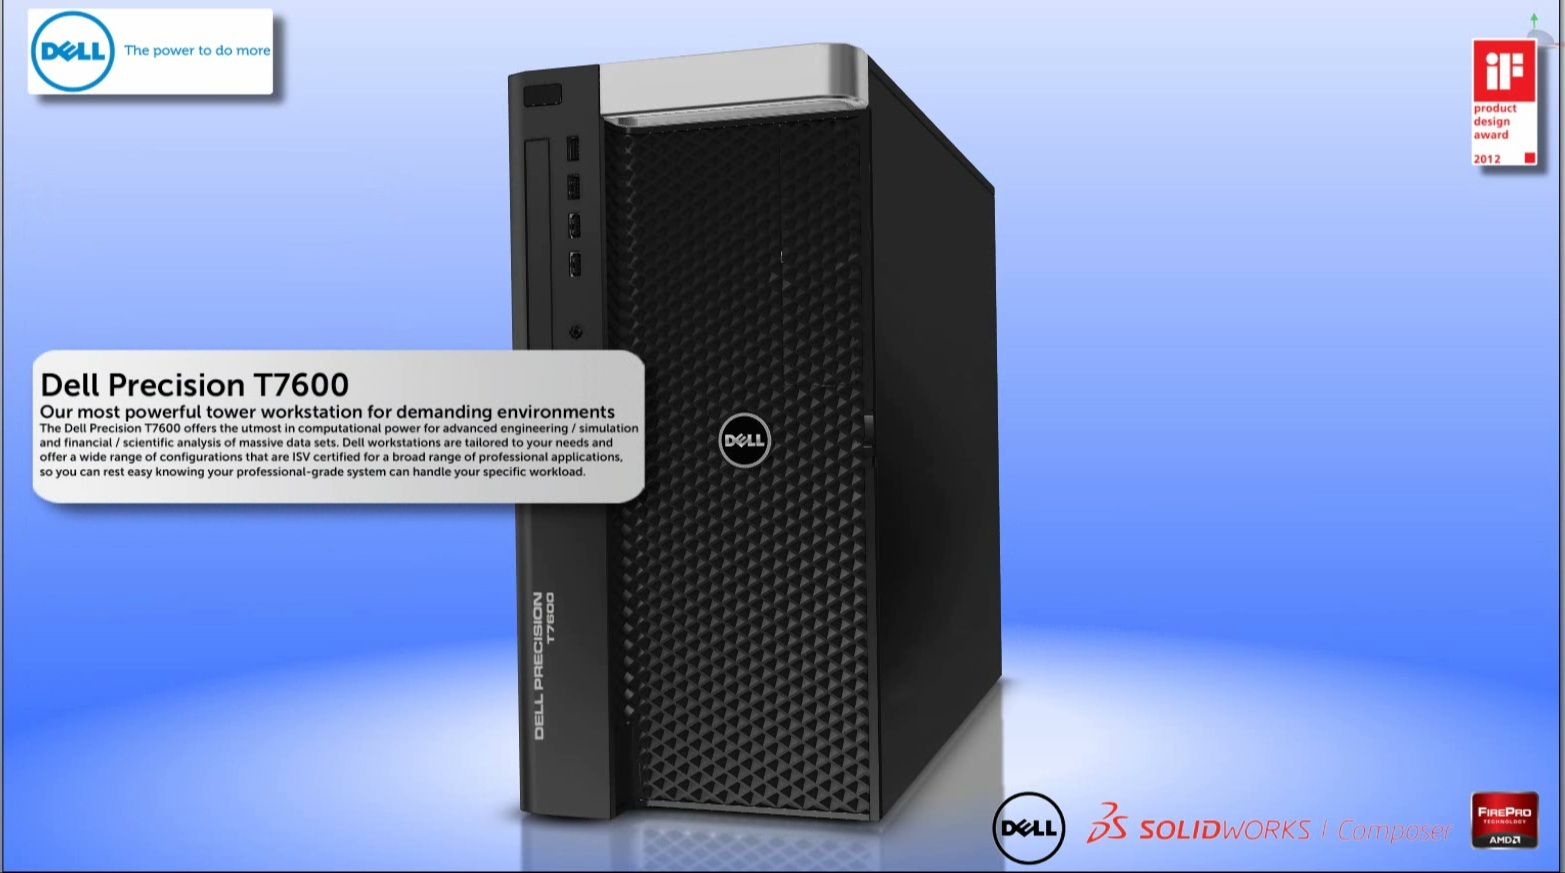 Dell Precision T7600 Product Demo